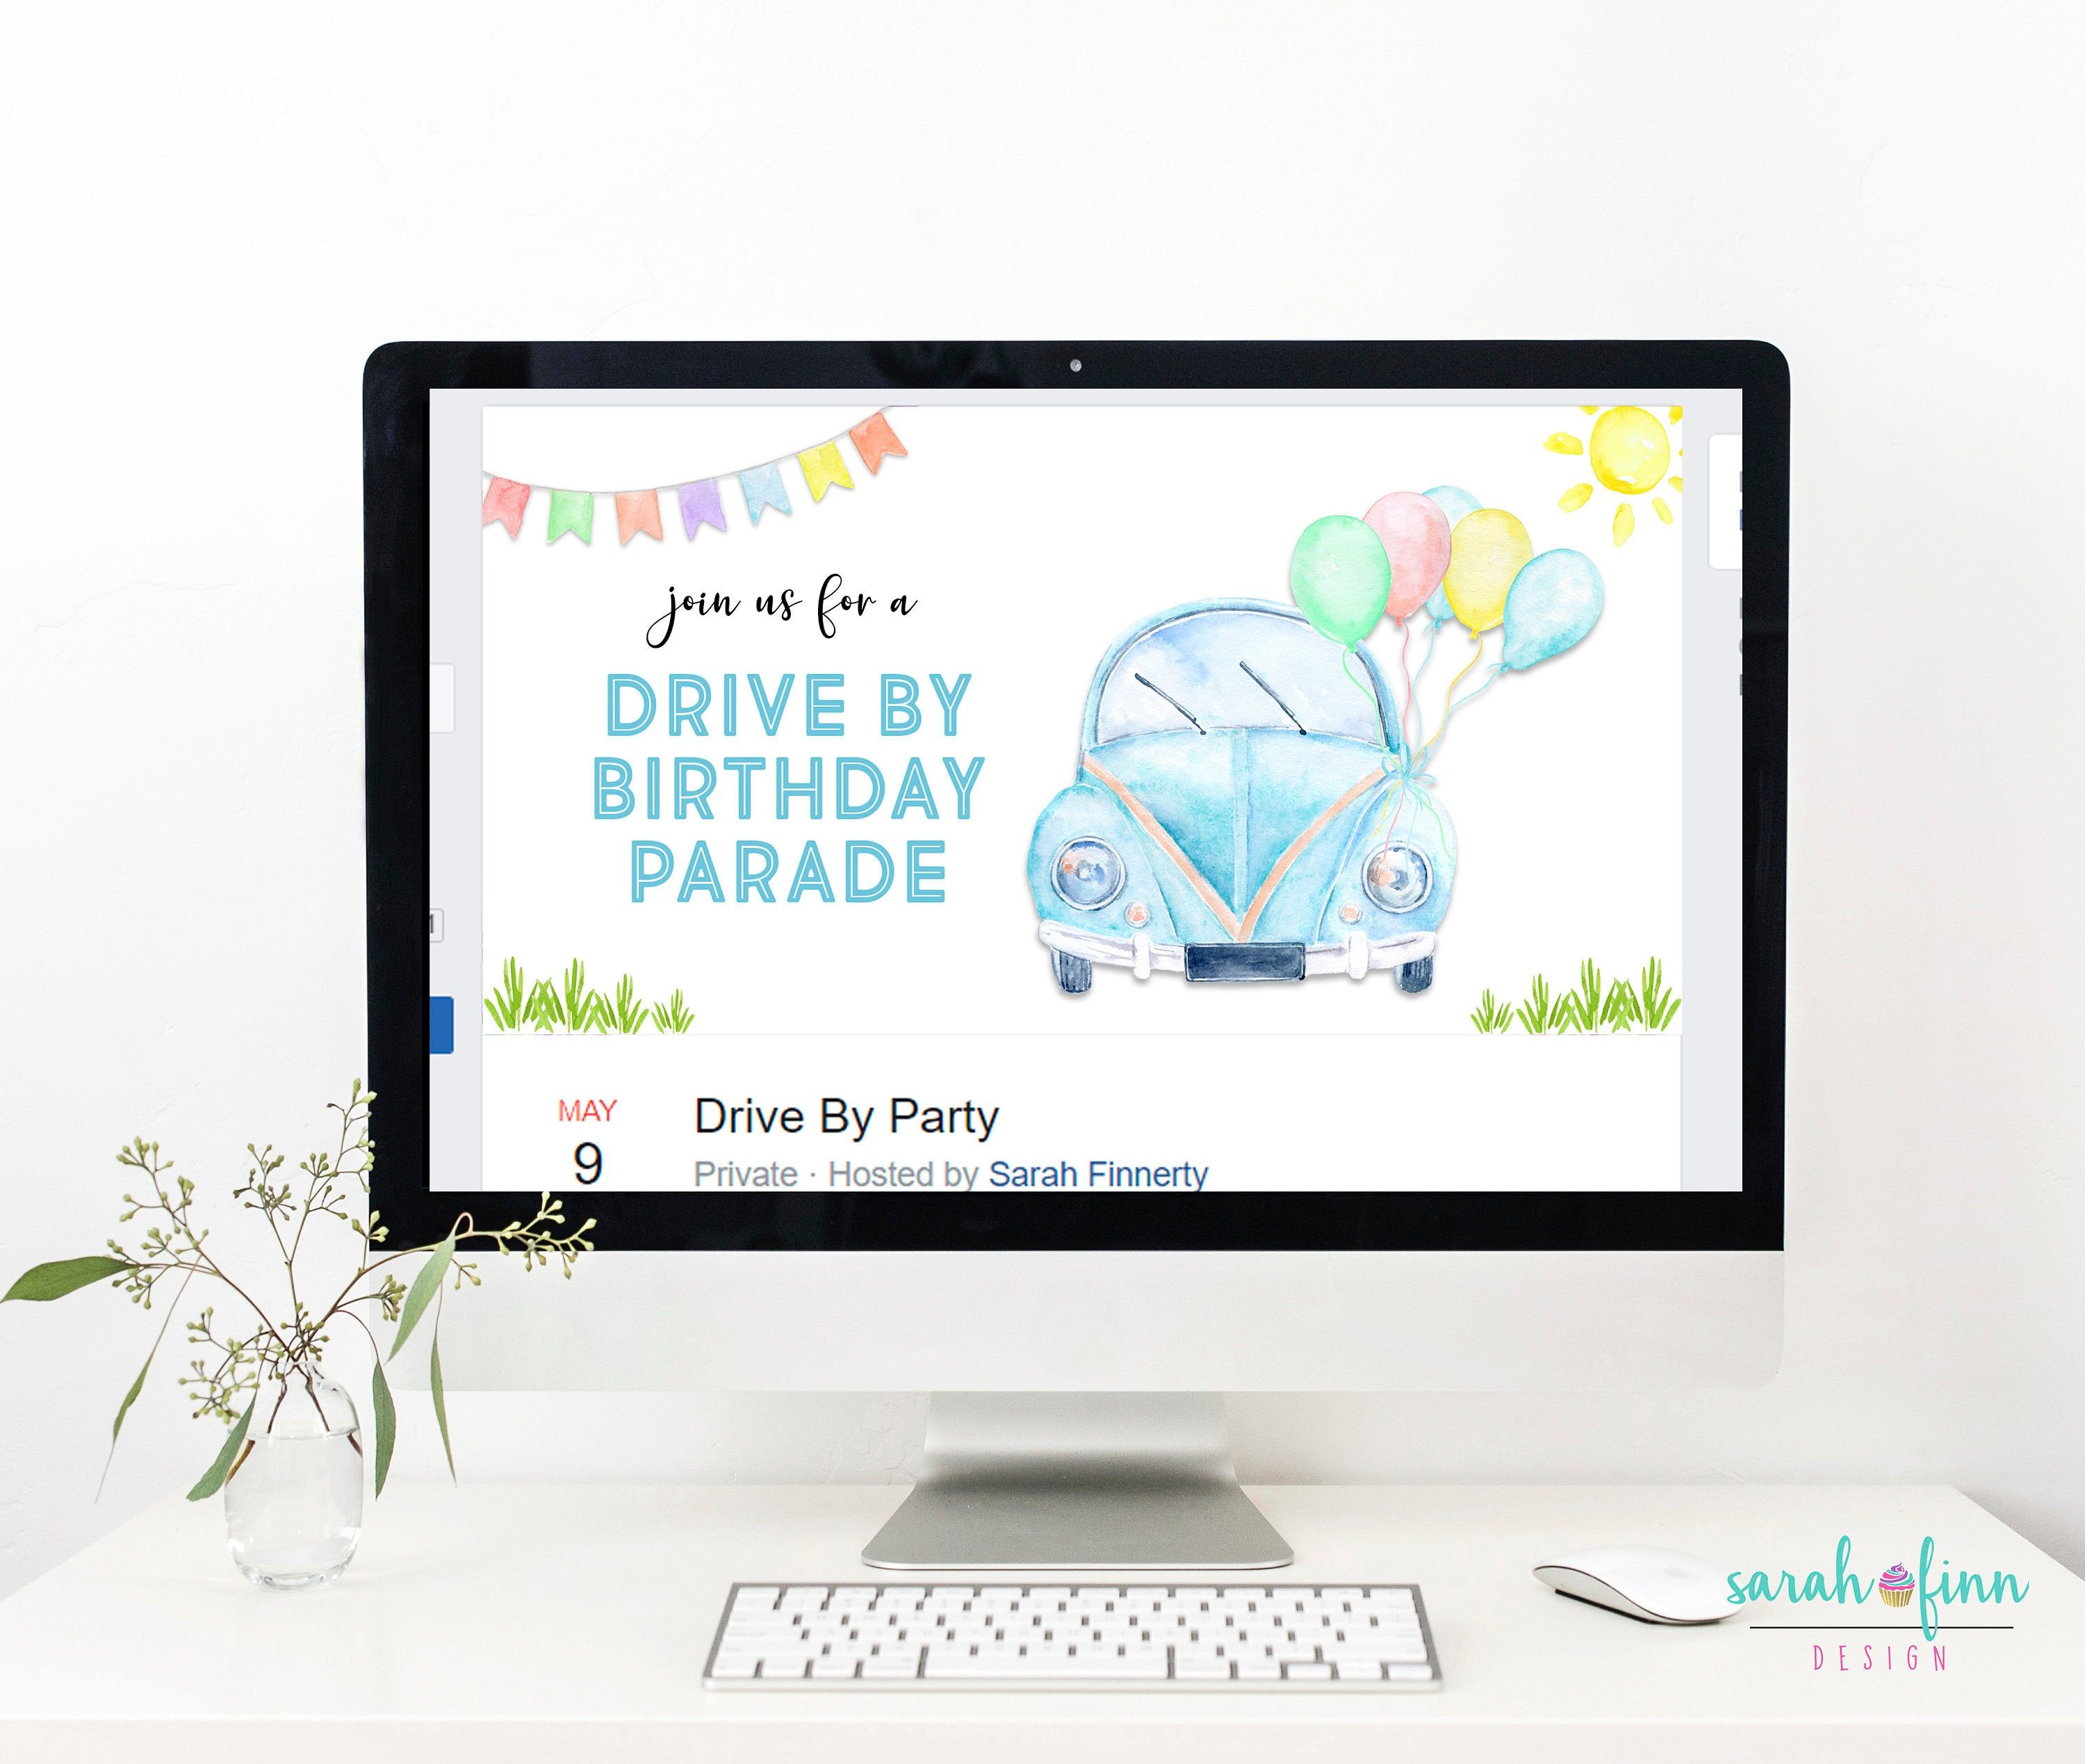 Drive By Birthday Parade Facebook Event Cover Facebook